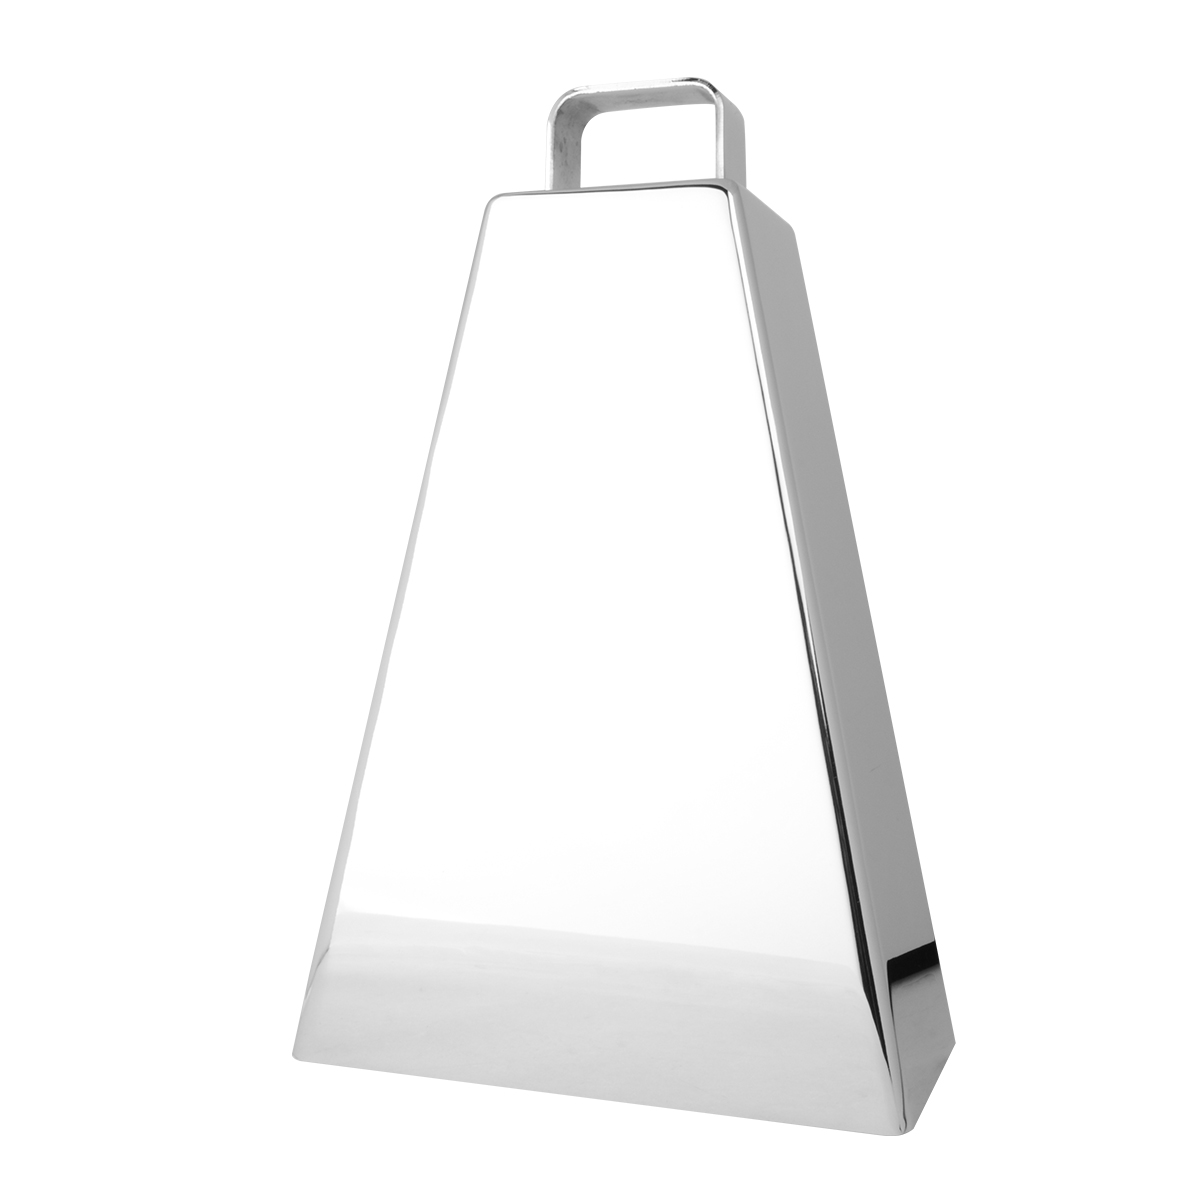 "#57304 Large Cow Bell - 8"" (L) x 4"" (W) x 11"" (H)"